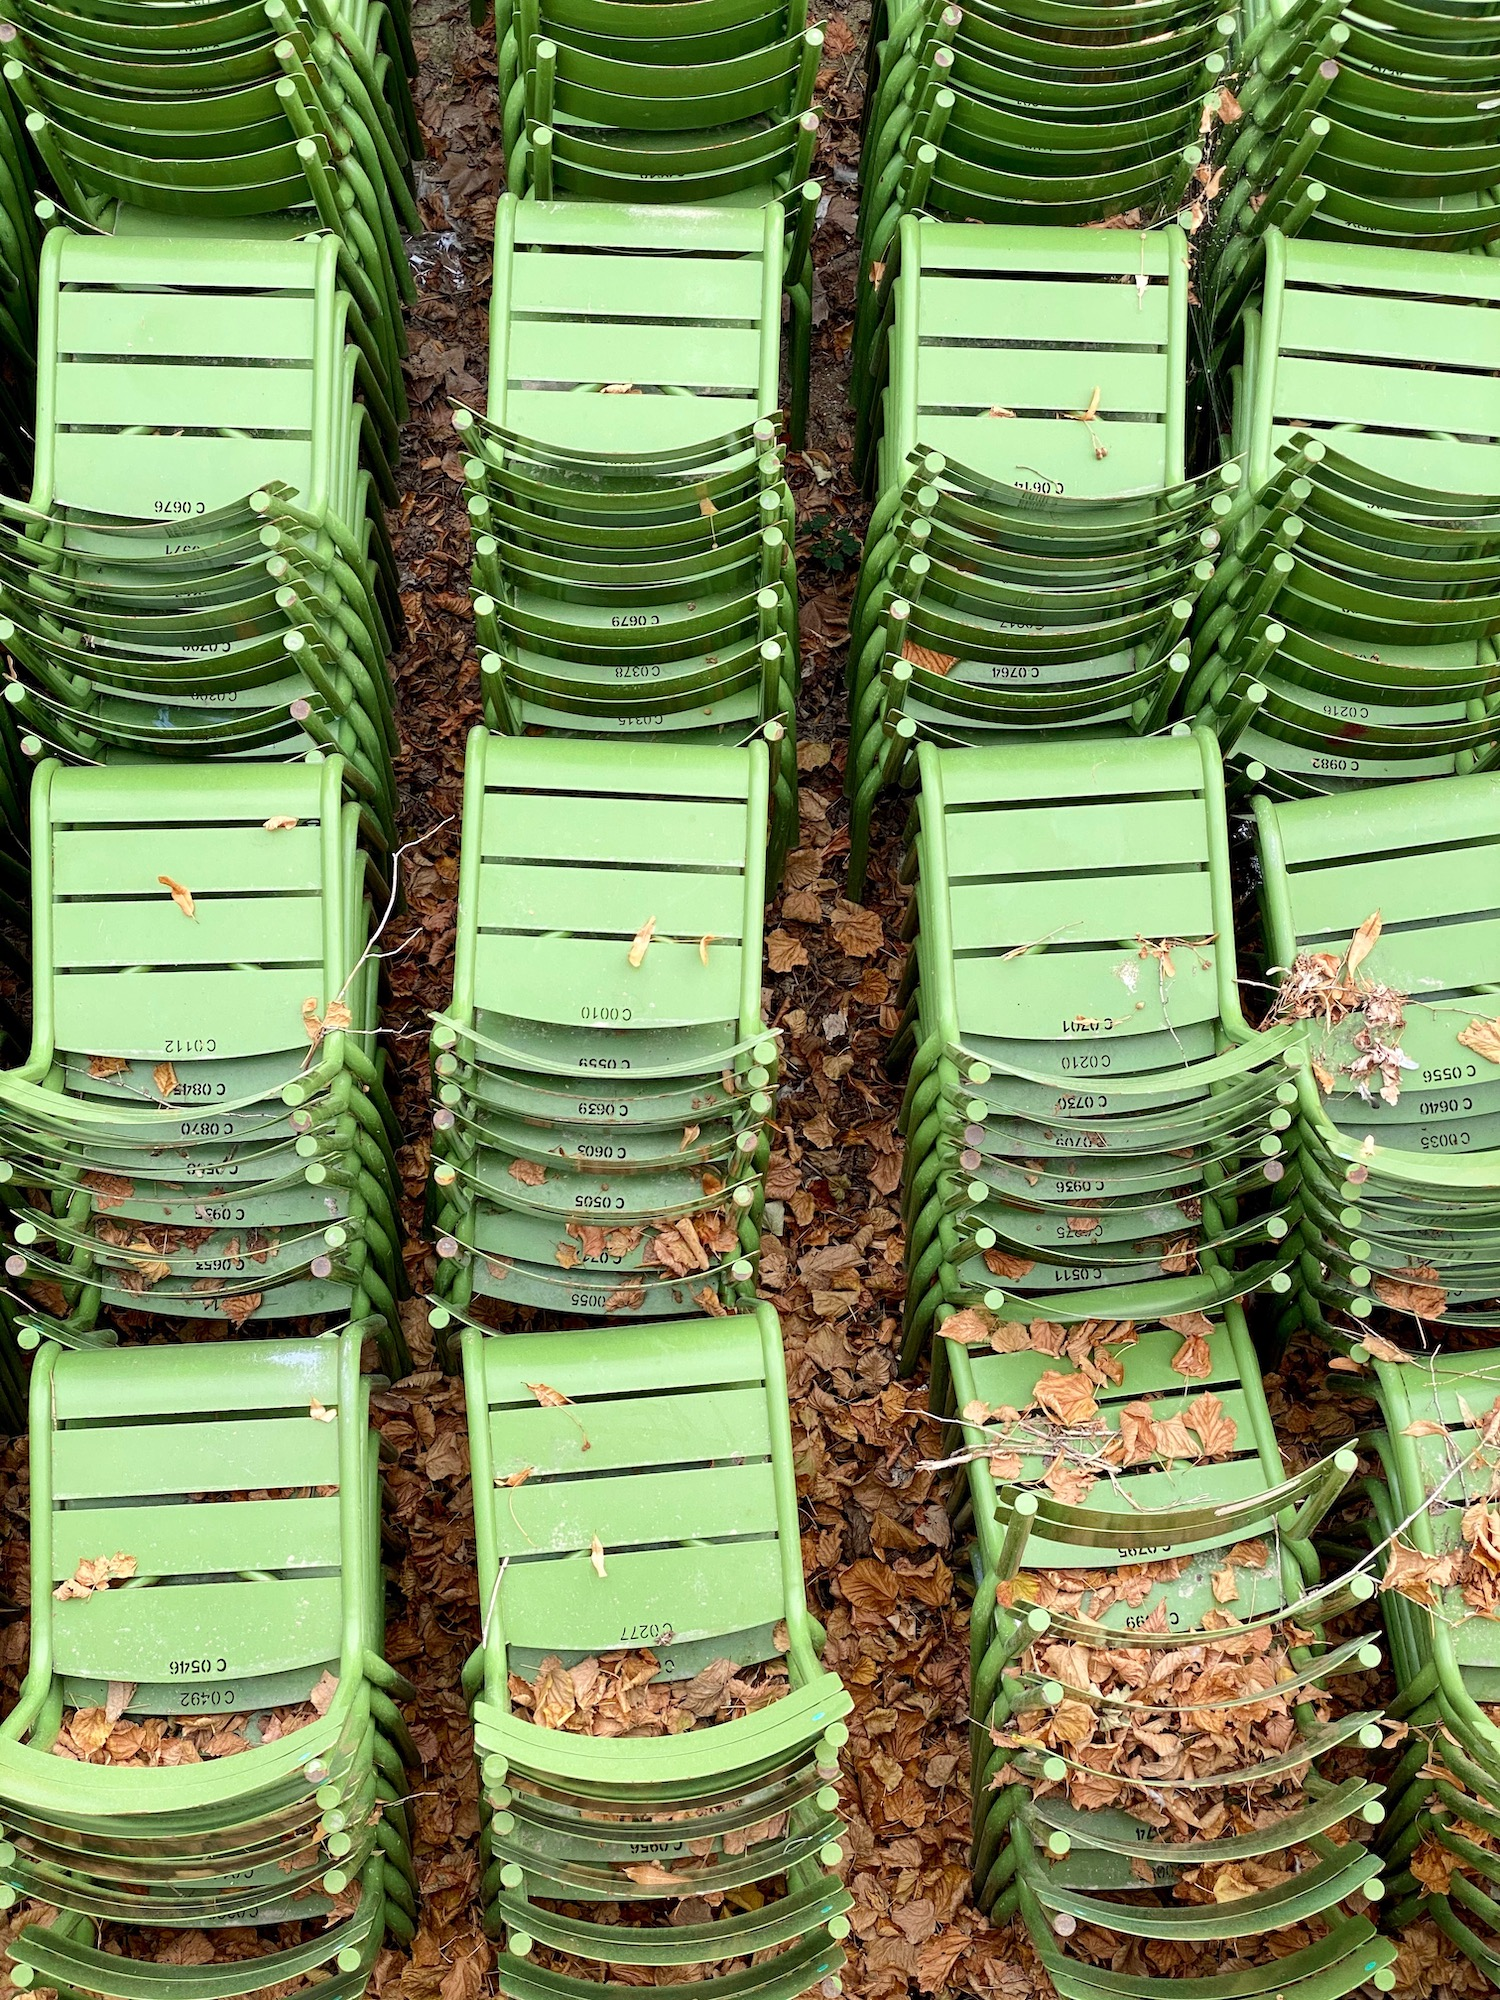 Green park chairs